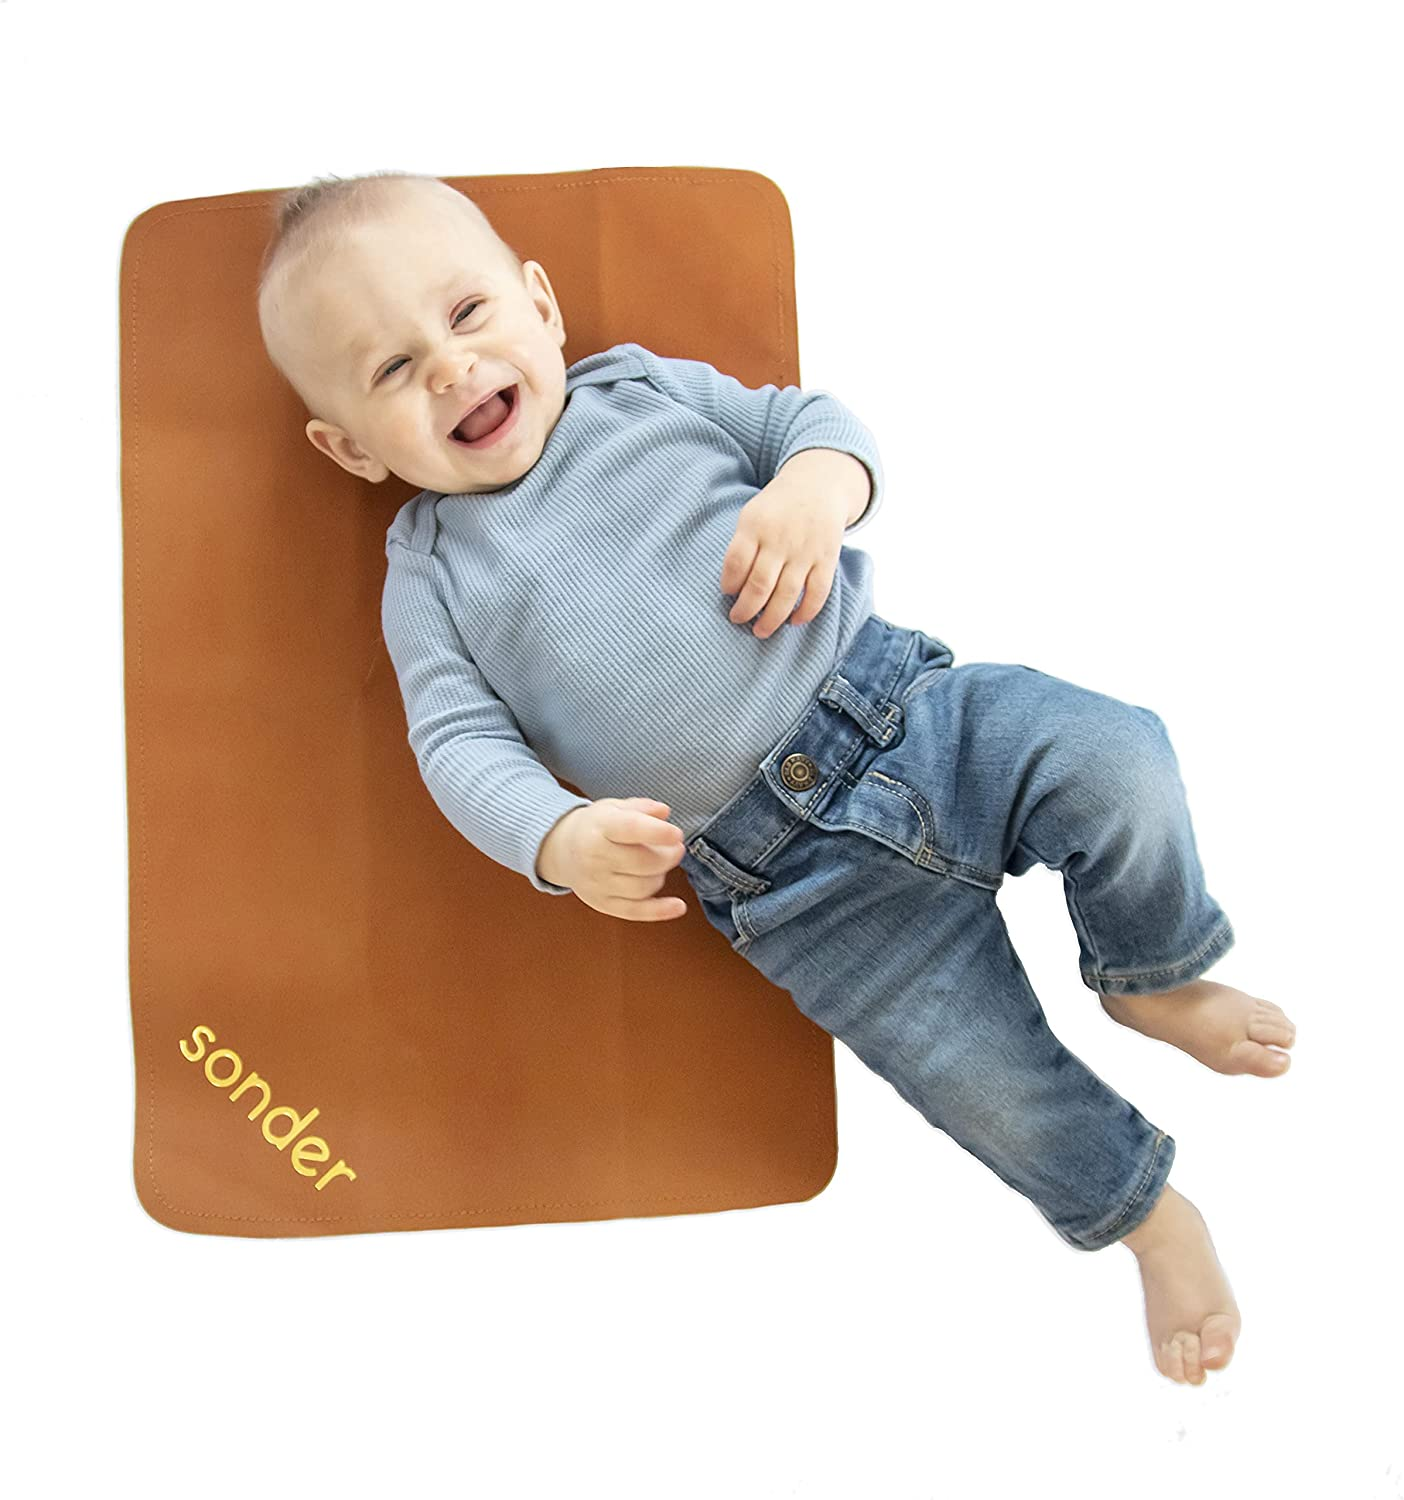 SONDER Double Sided Vegan Leather Changing Mat - Infant and Toddler Multipurpose Portable Waterproof Diaper Pad - Compact for Travel - Deluxe Diaper Changer (Sugar Almond + Raven, 14